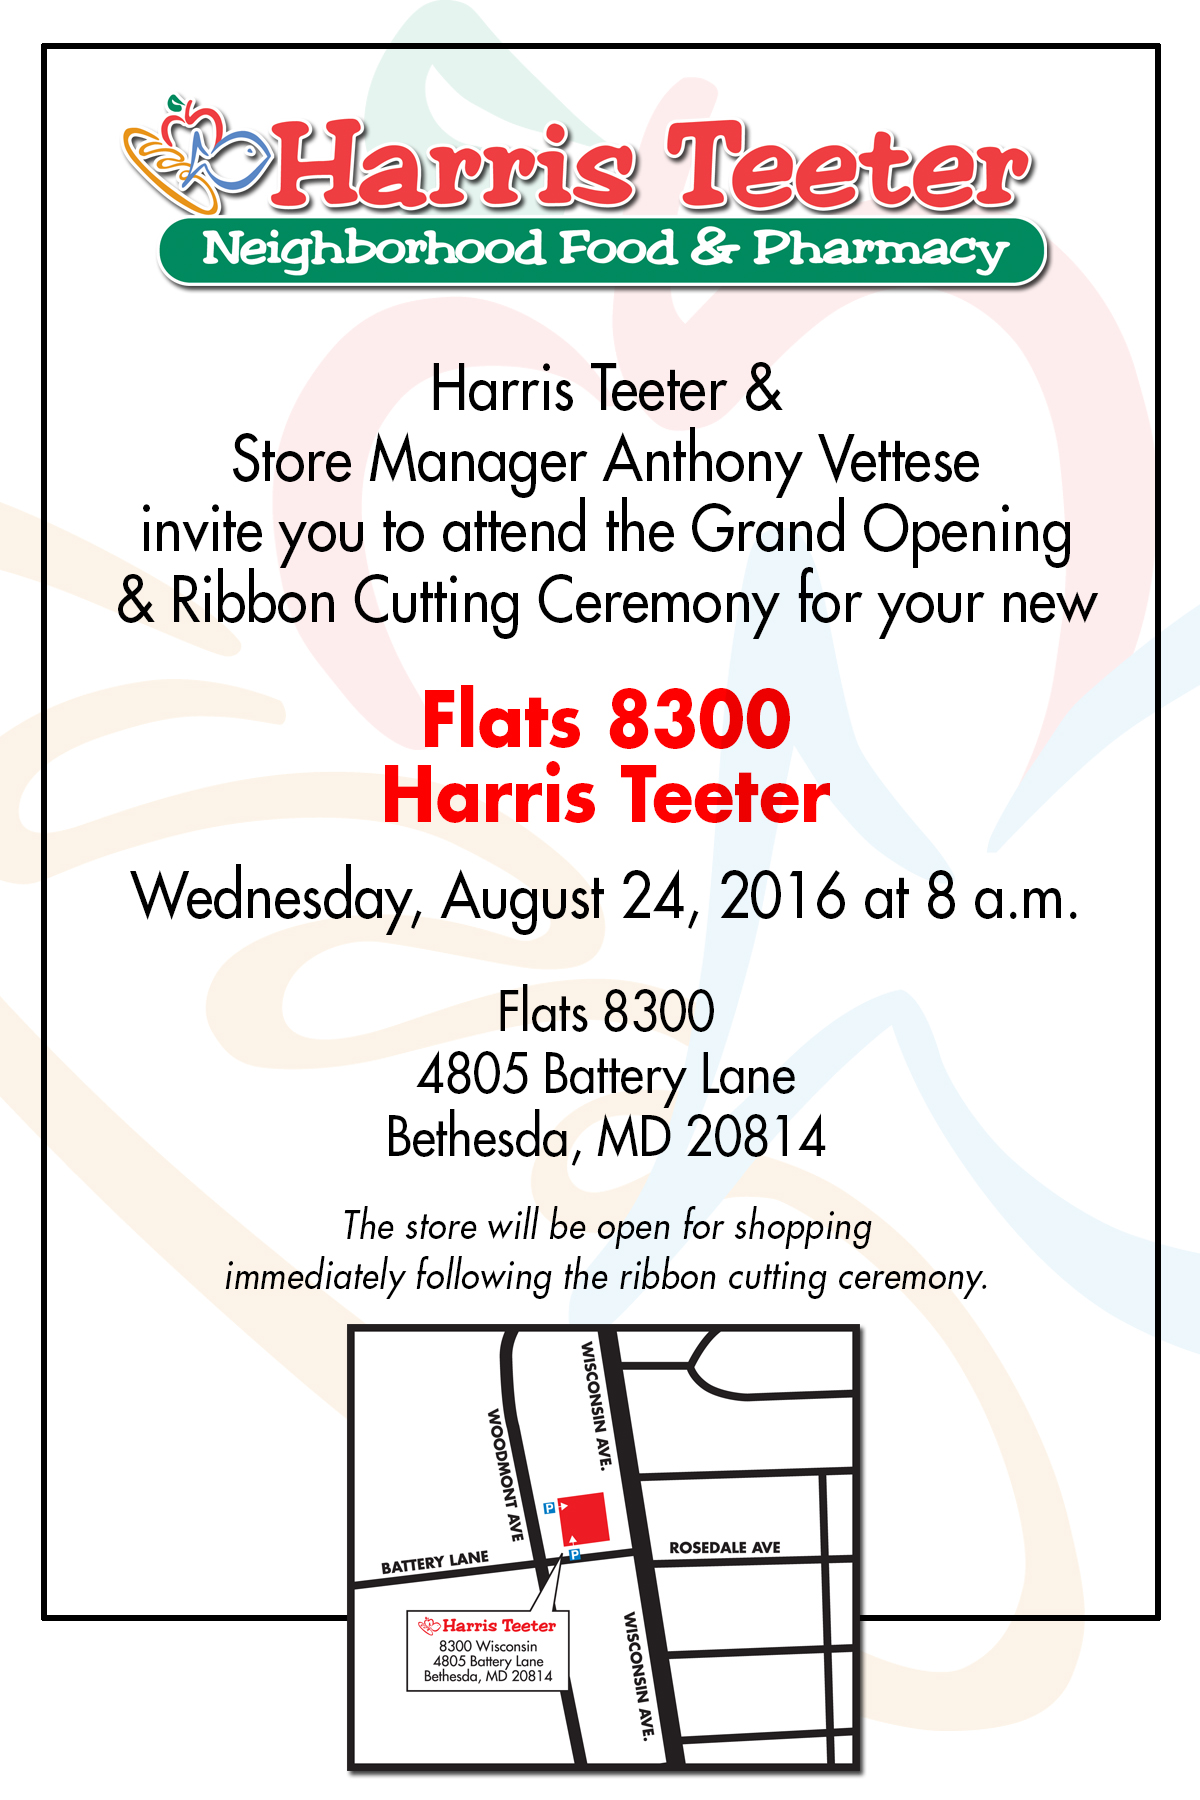 Grand Opening of Harris Teeter Store in Bethesda, Md.